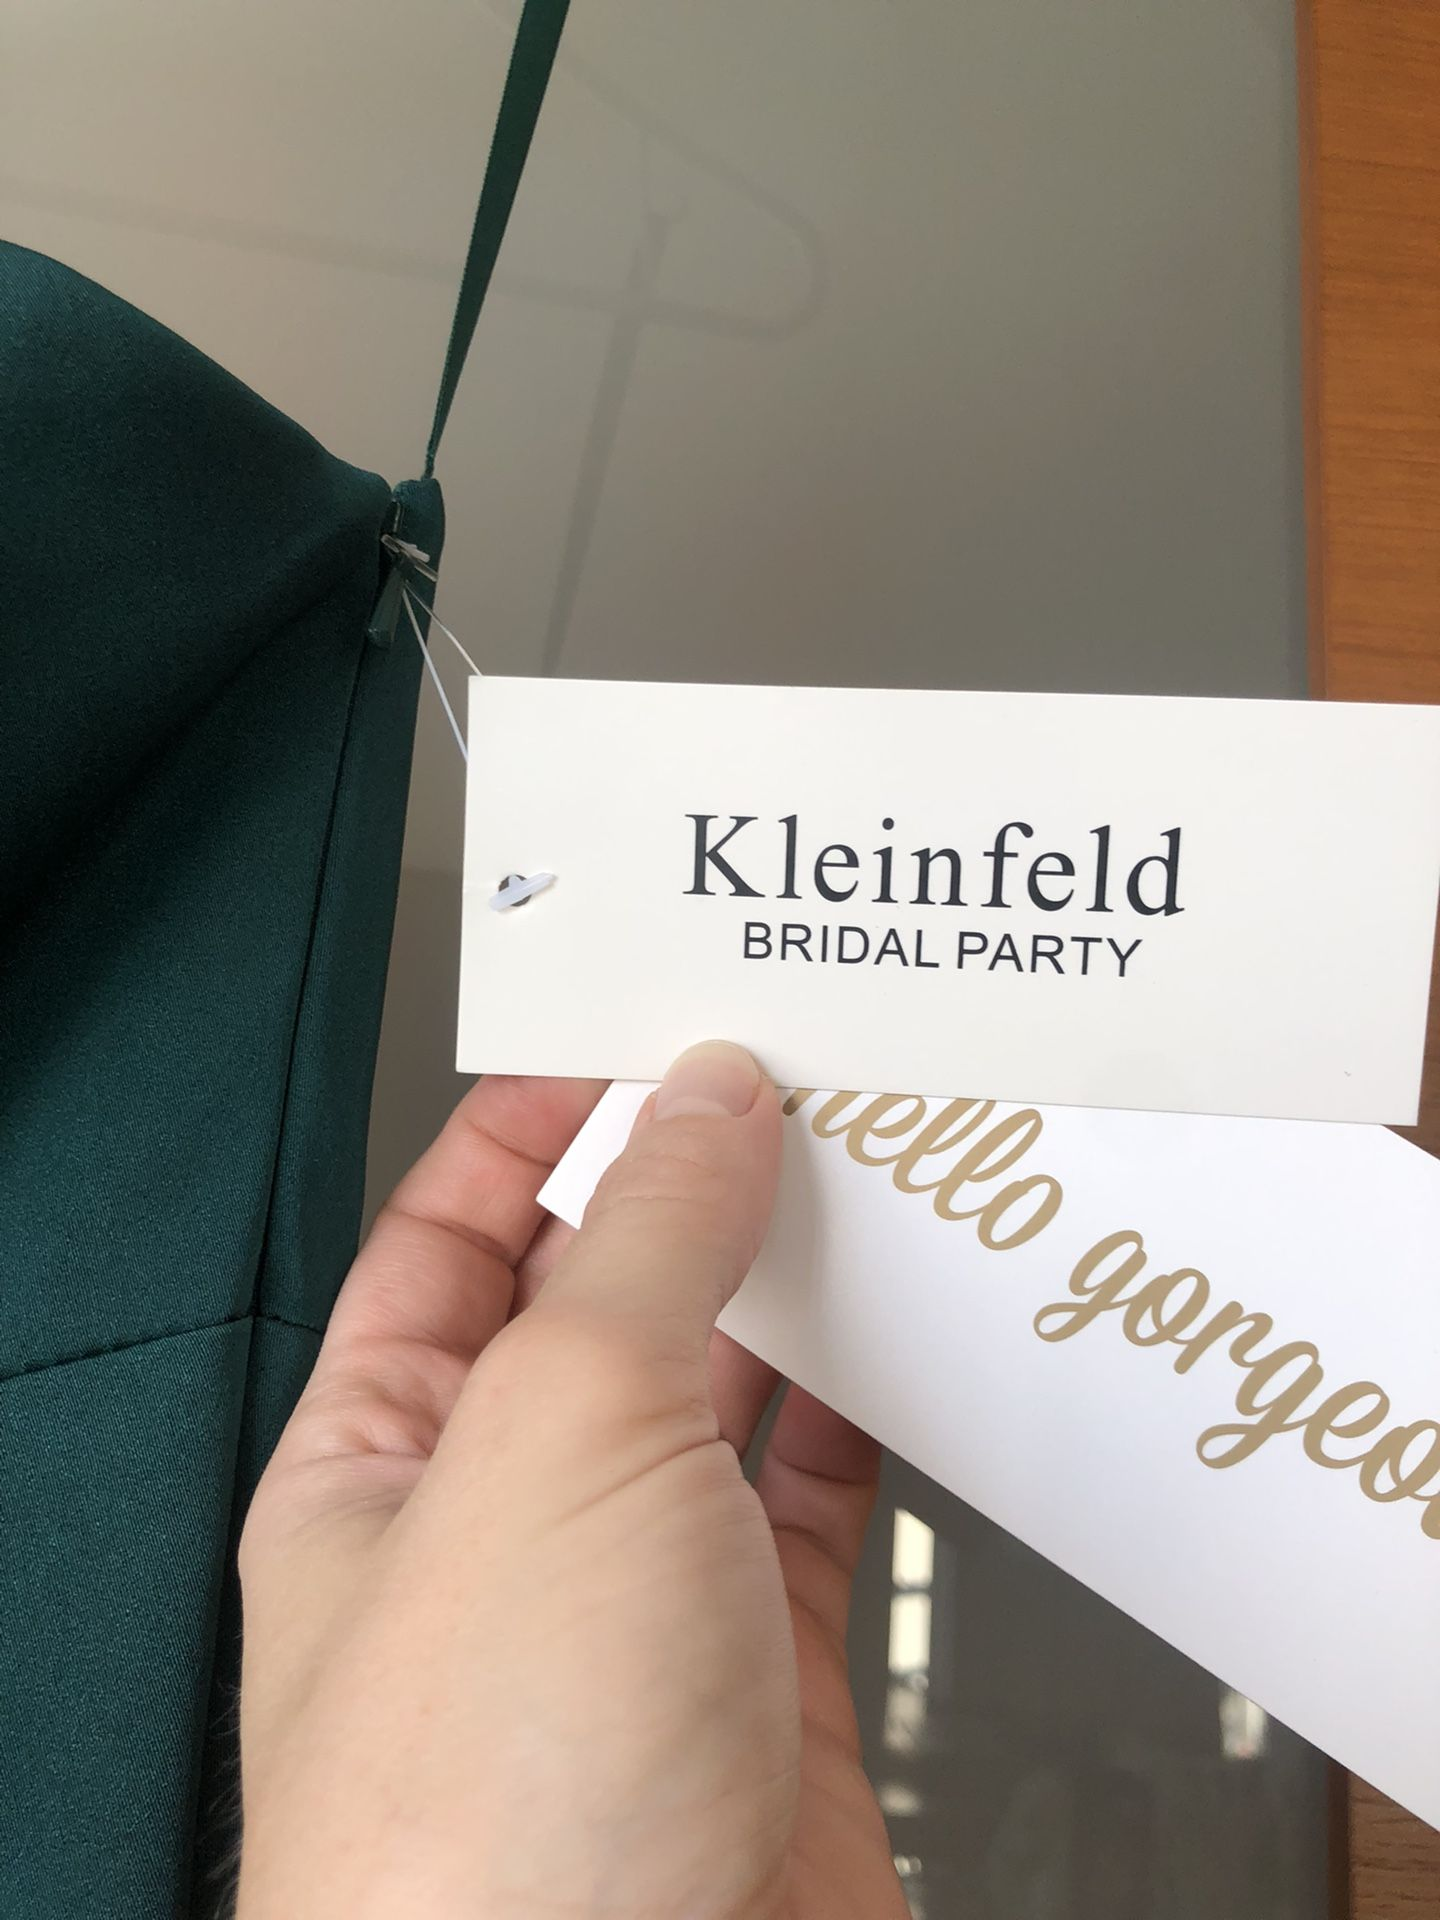 Kleinfeld Bridal Party Gown